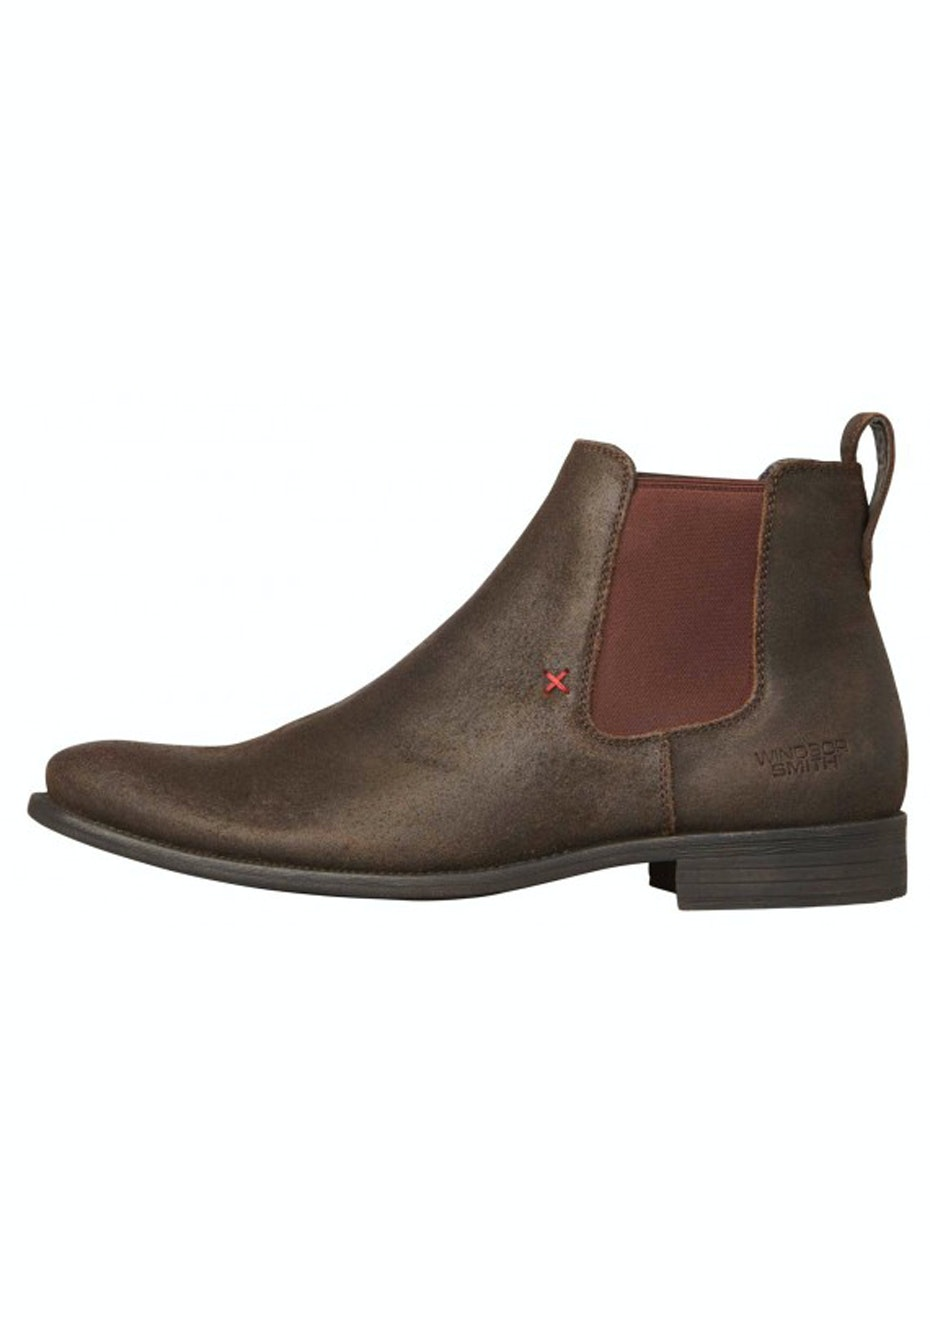 Windsor Smith - PRINCETON - BROWN OIL SUEDE